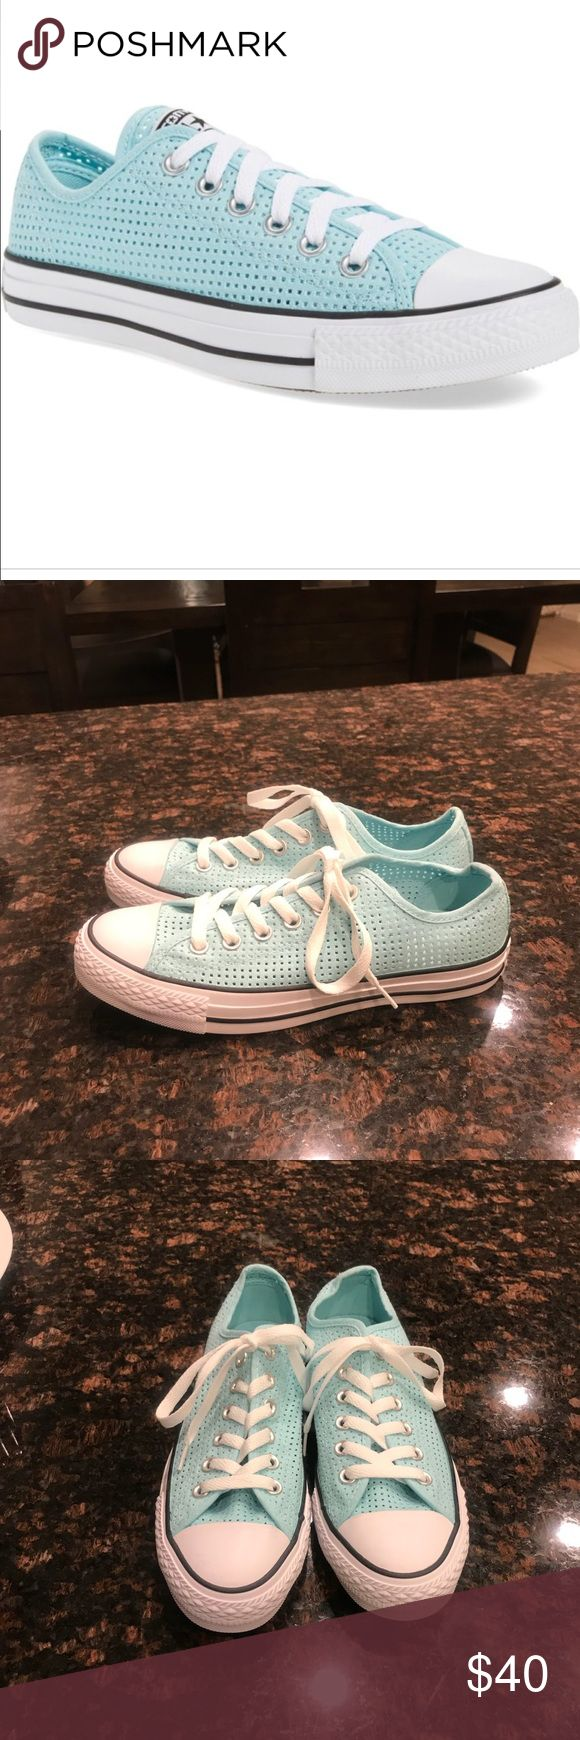 NWOT Converse All Star Ox Perforated Sneakers NWOT Converse All Star Ox Perforated Sneakers. Size 7.5. These run a bit in large so these will fit a 7.5-8. Converse Shoes Sneakers